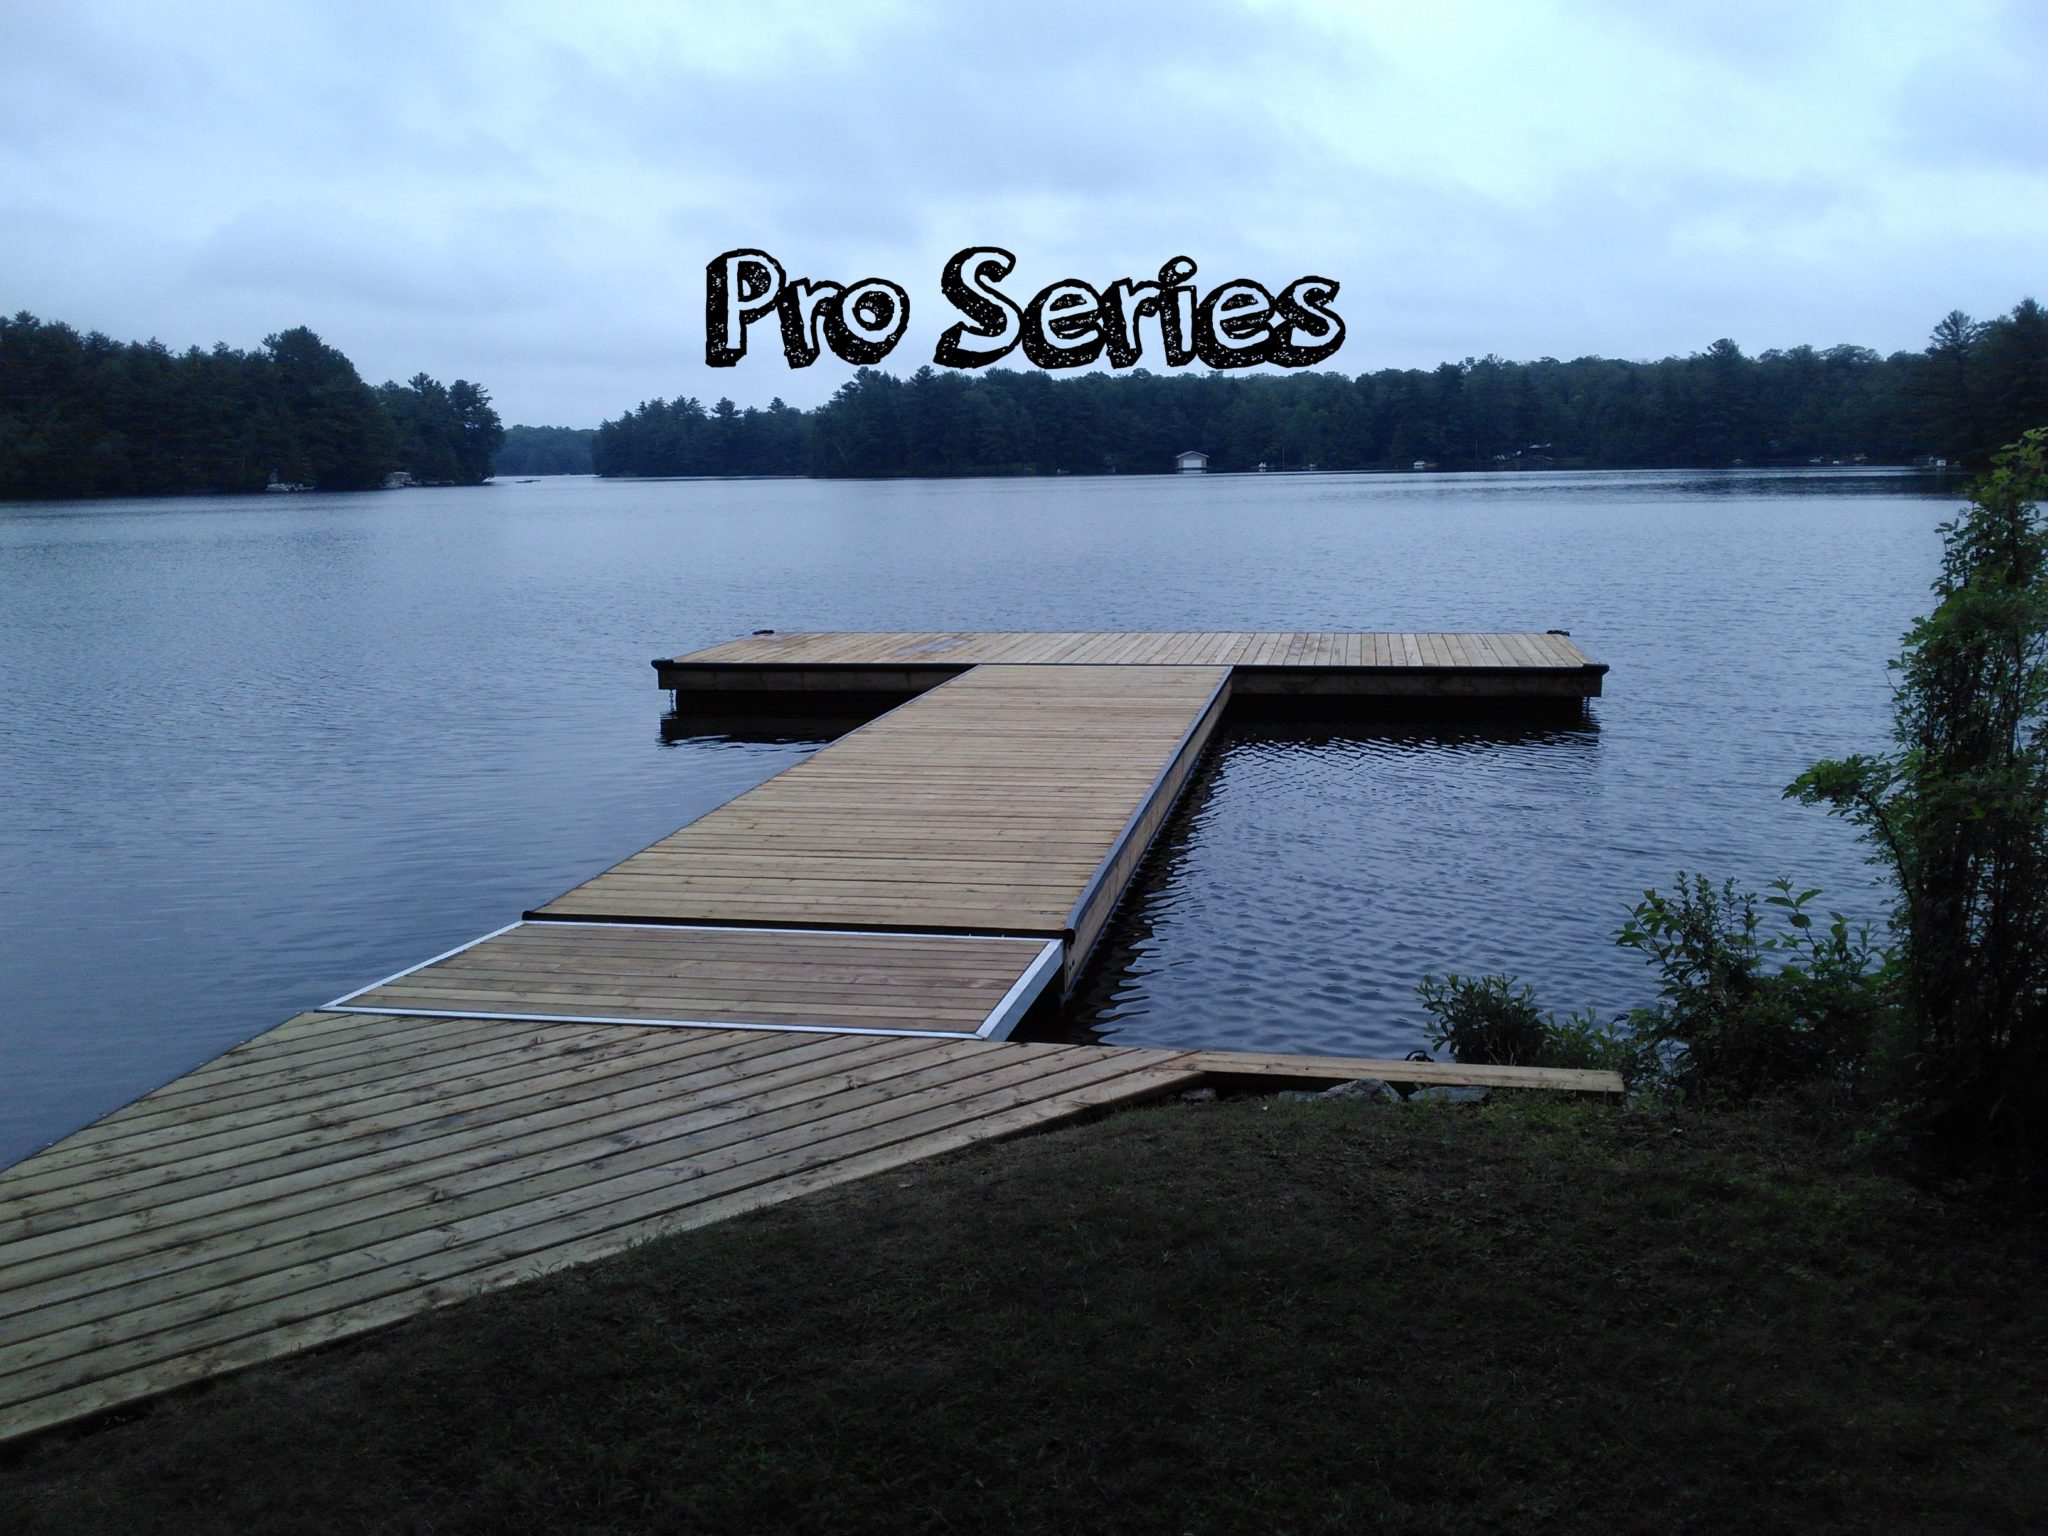 Whitewater Floating Docks and Marina Systems | White Water Docks